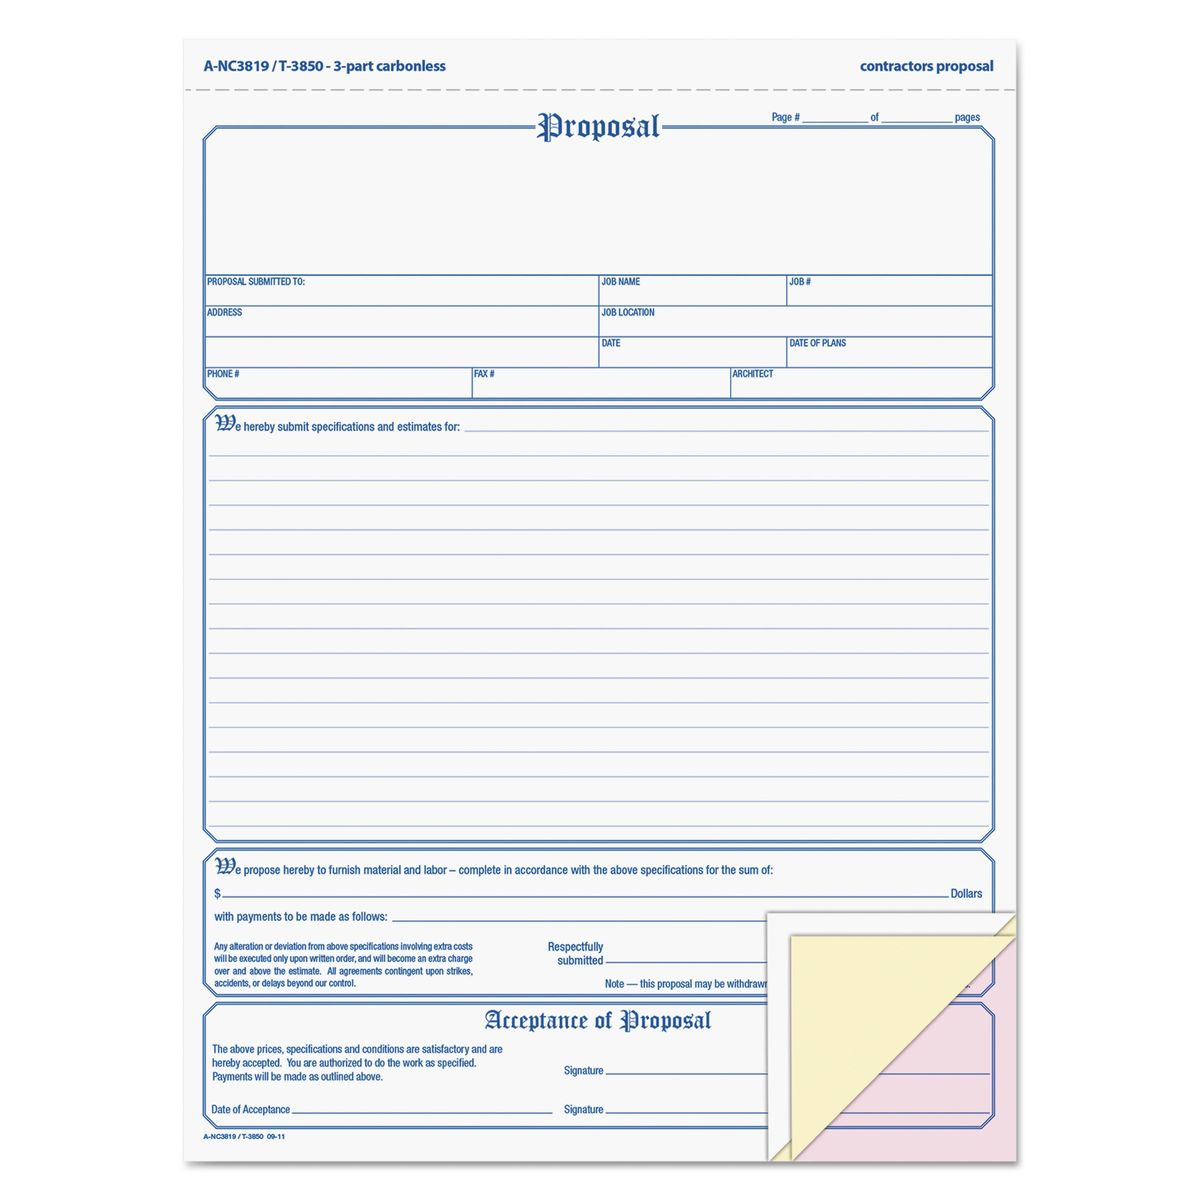 Proposal Forms. Get Business Proposal Forms Free Printable With ...